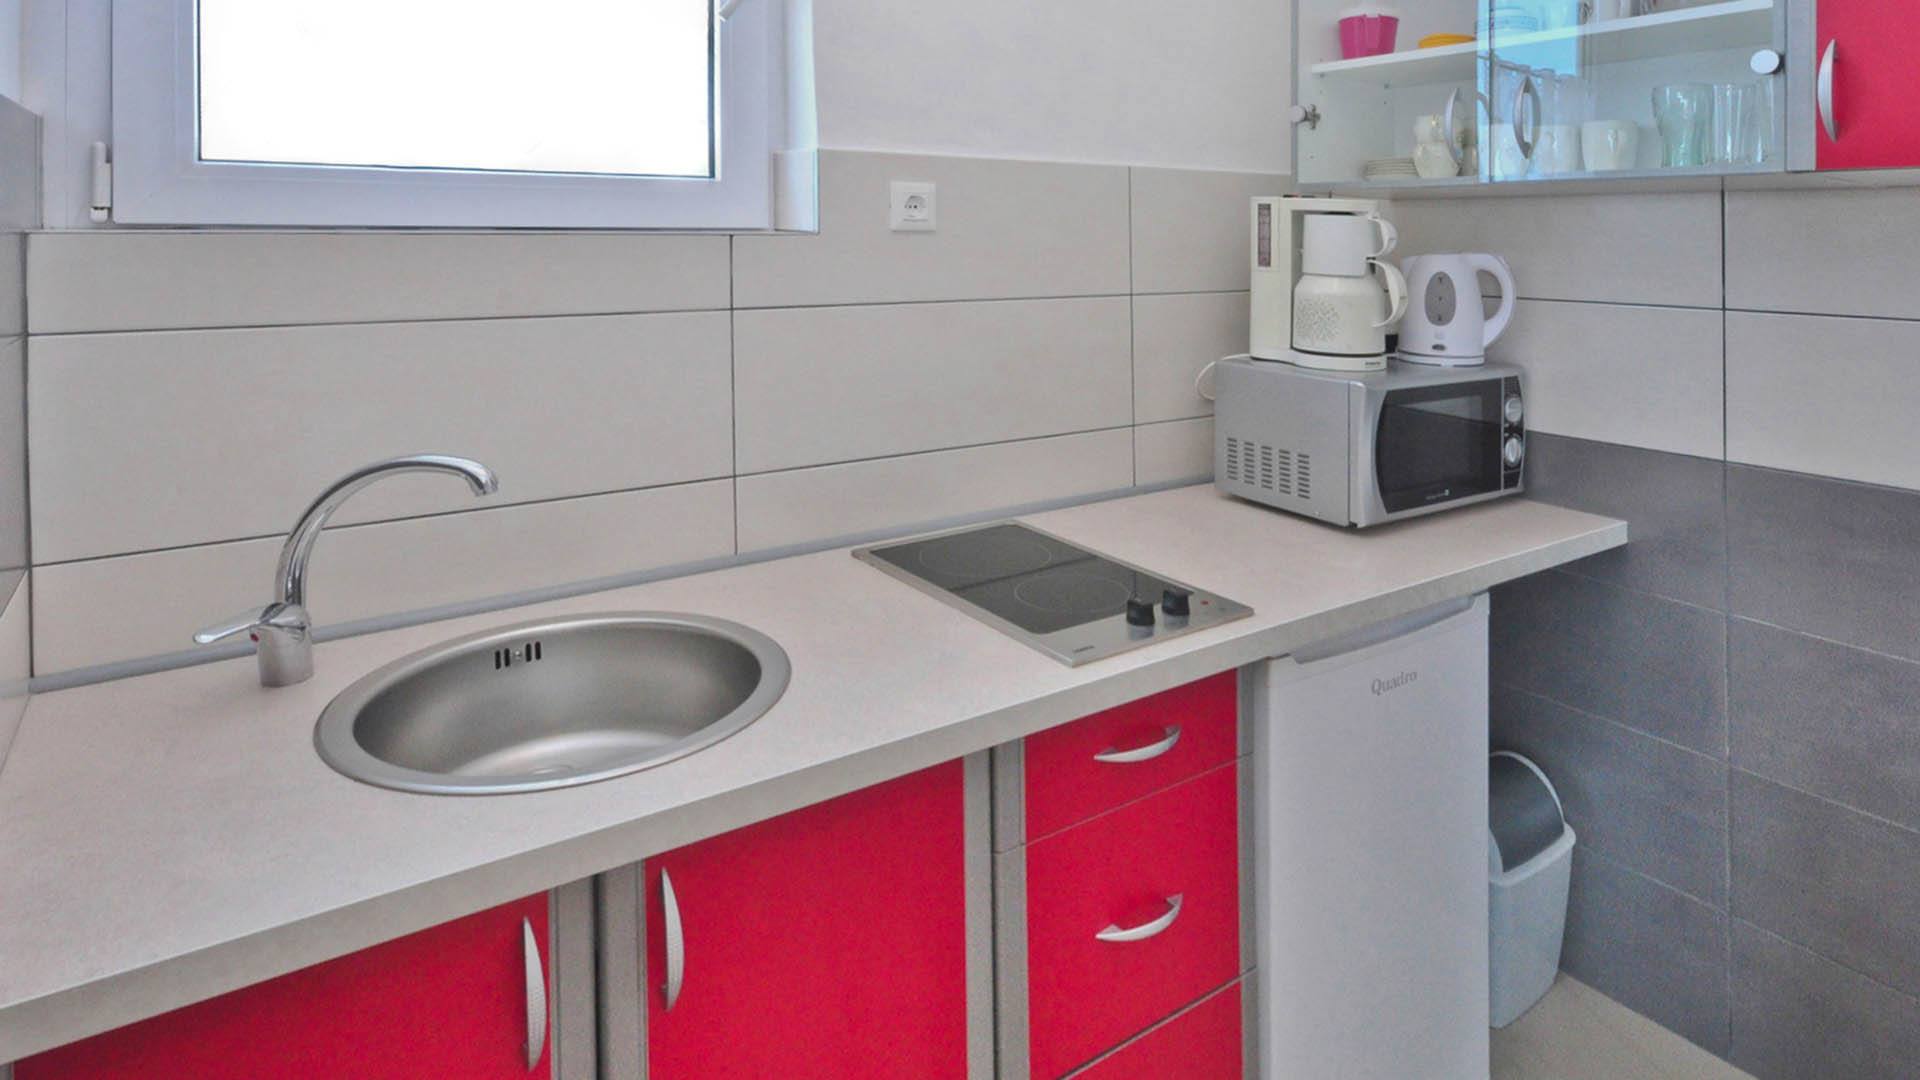 Studio apartments kitchenette